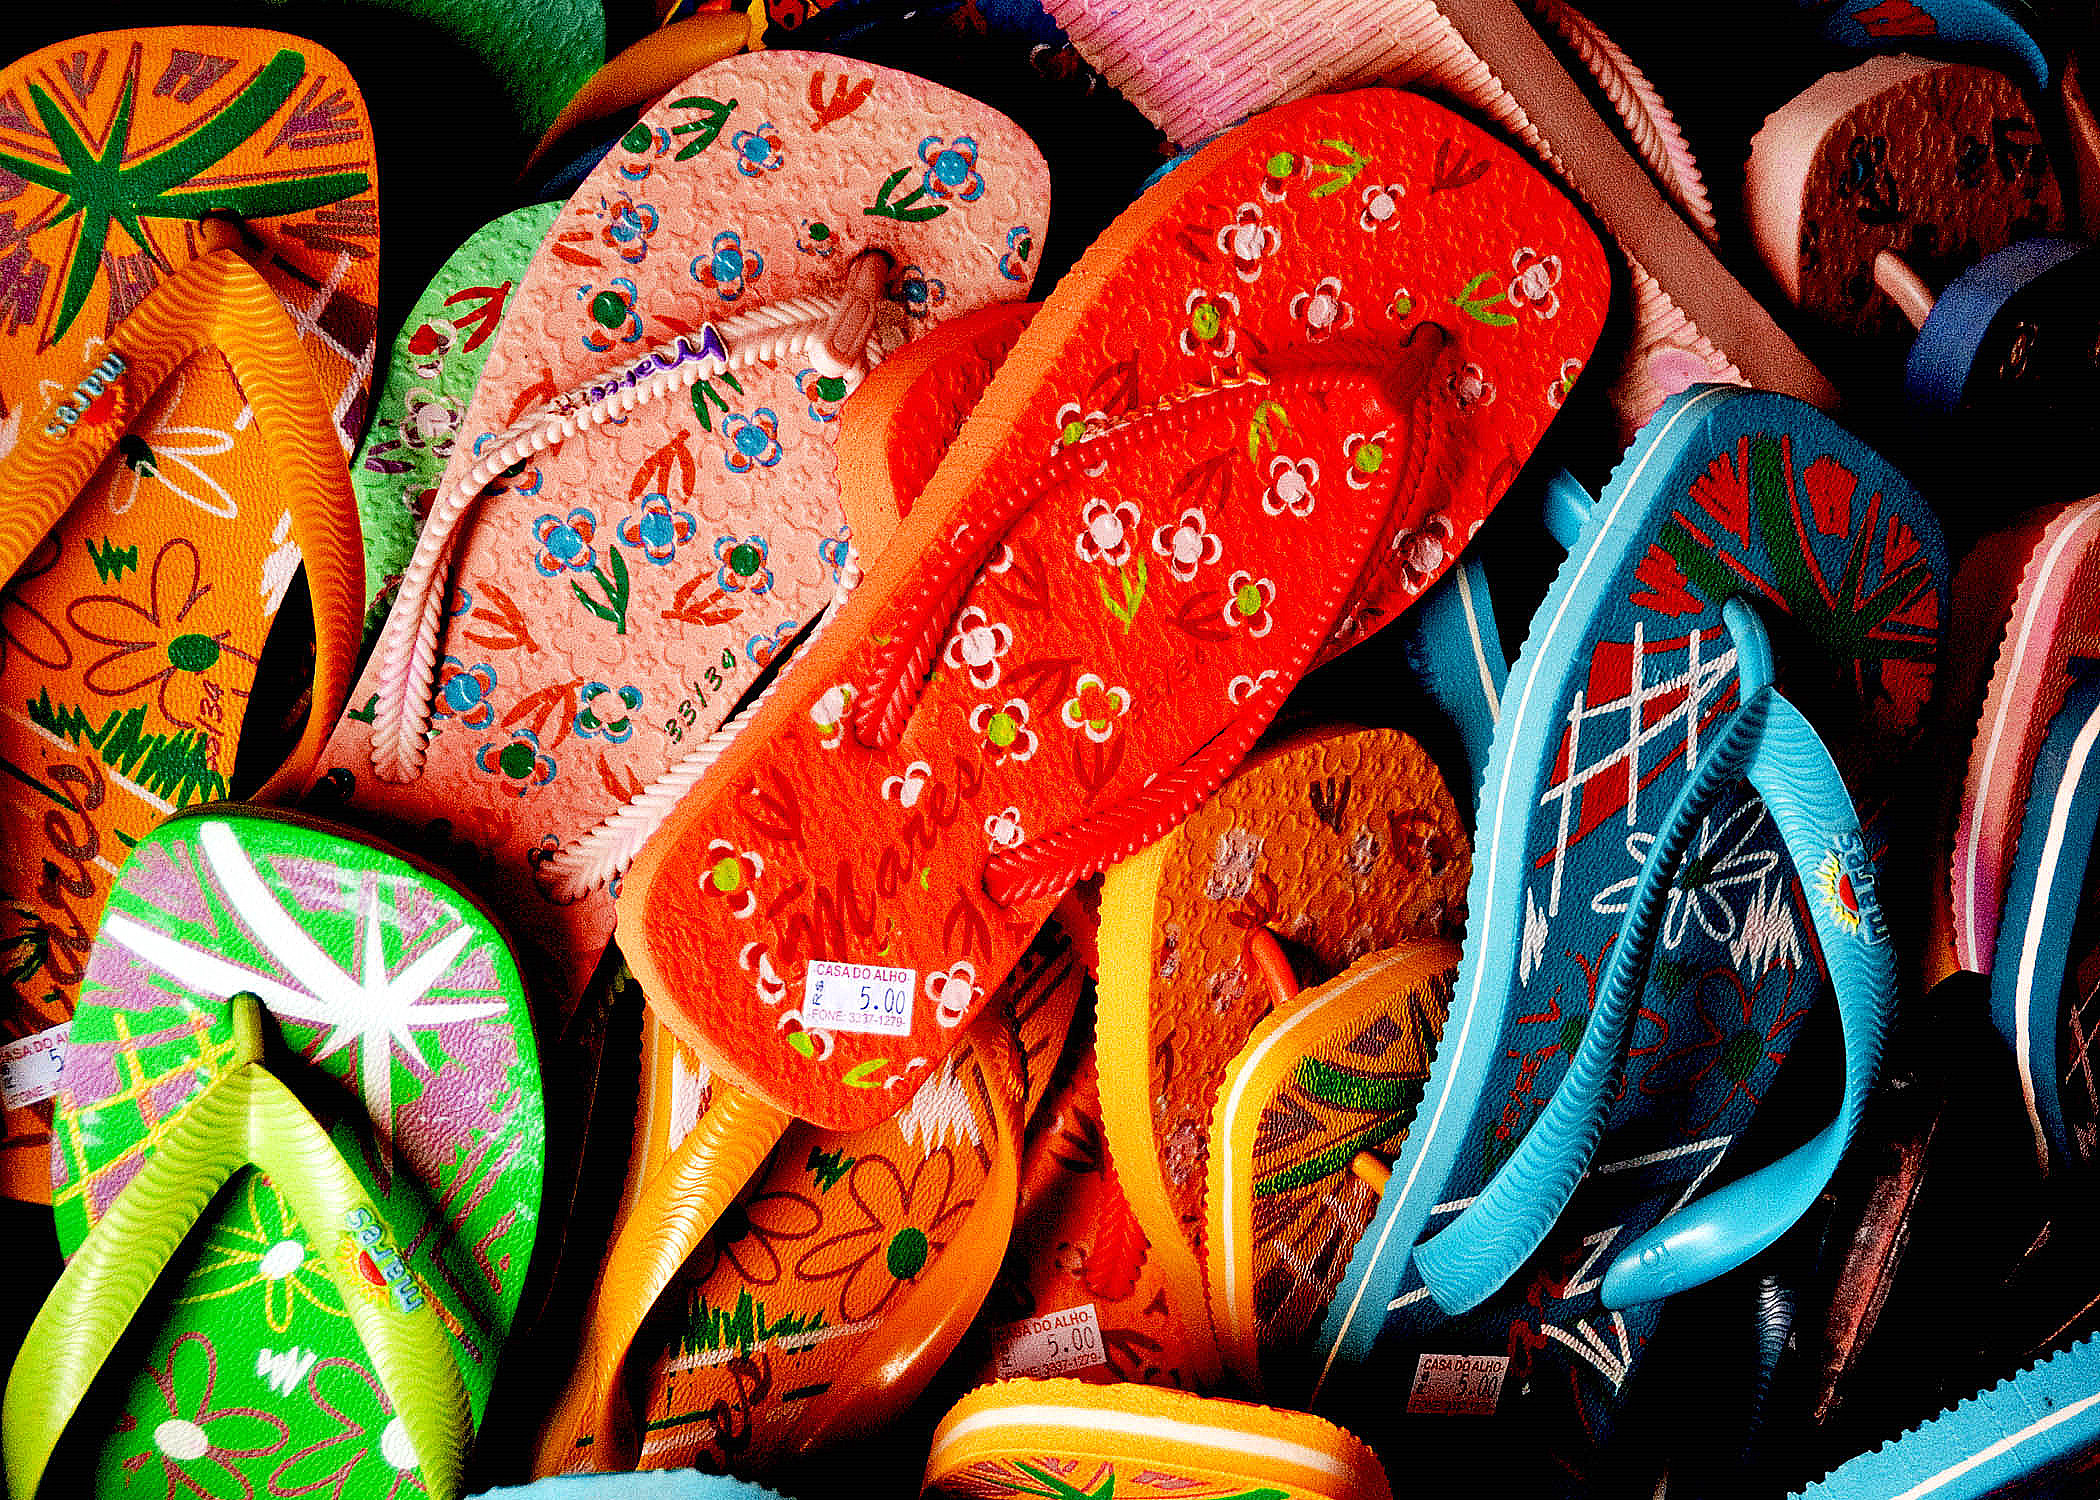 Flip flops - just pick one up, by Jairo [CC-BY-2.0 (www.creativecommons.org/licenses/by/2.0)], via Wikimedia Commons